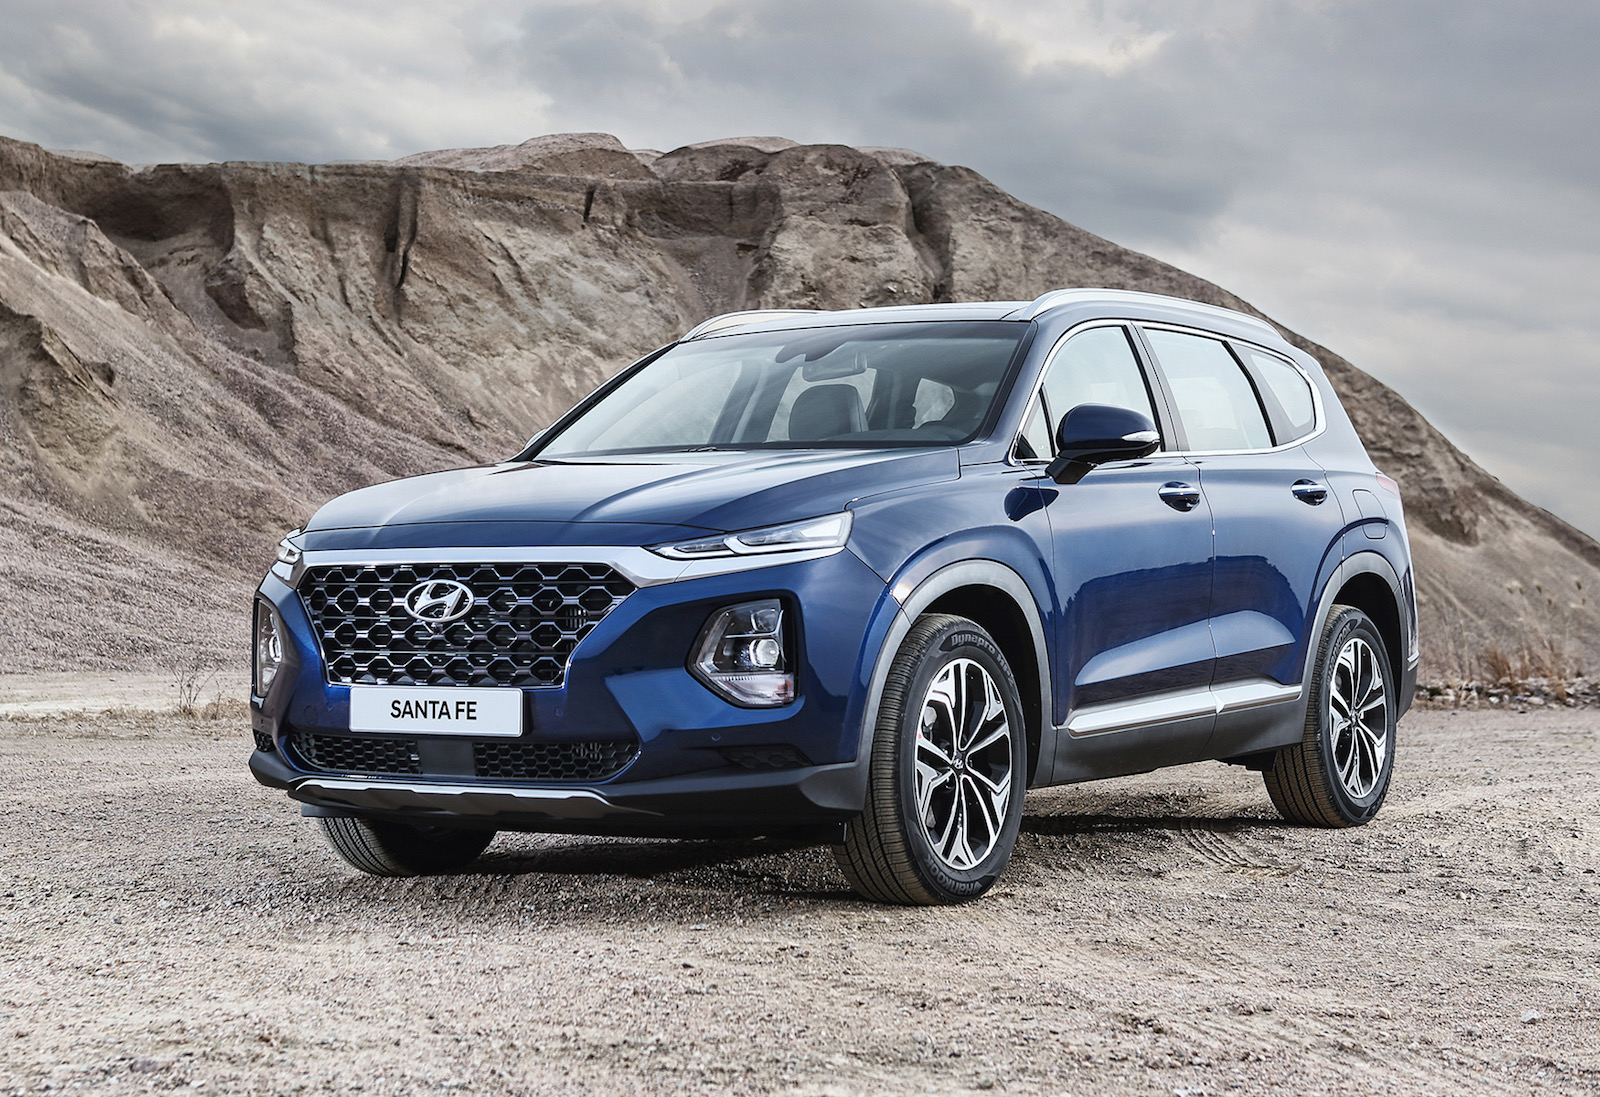 2019 hyundai santa fe unveiled gets new 8 spd auto. Black Bedroom Furniture Sets. Home Design Ideas